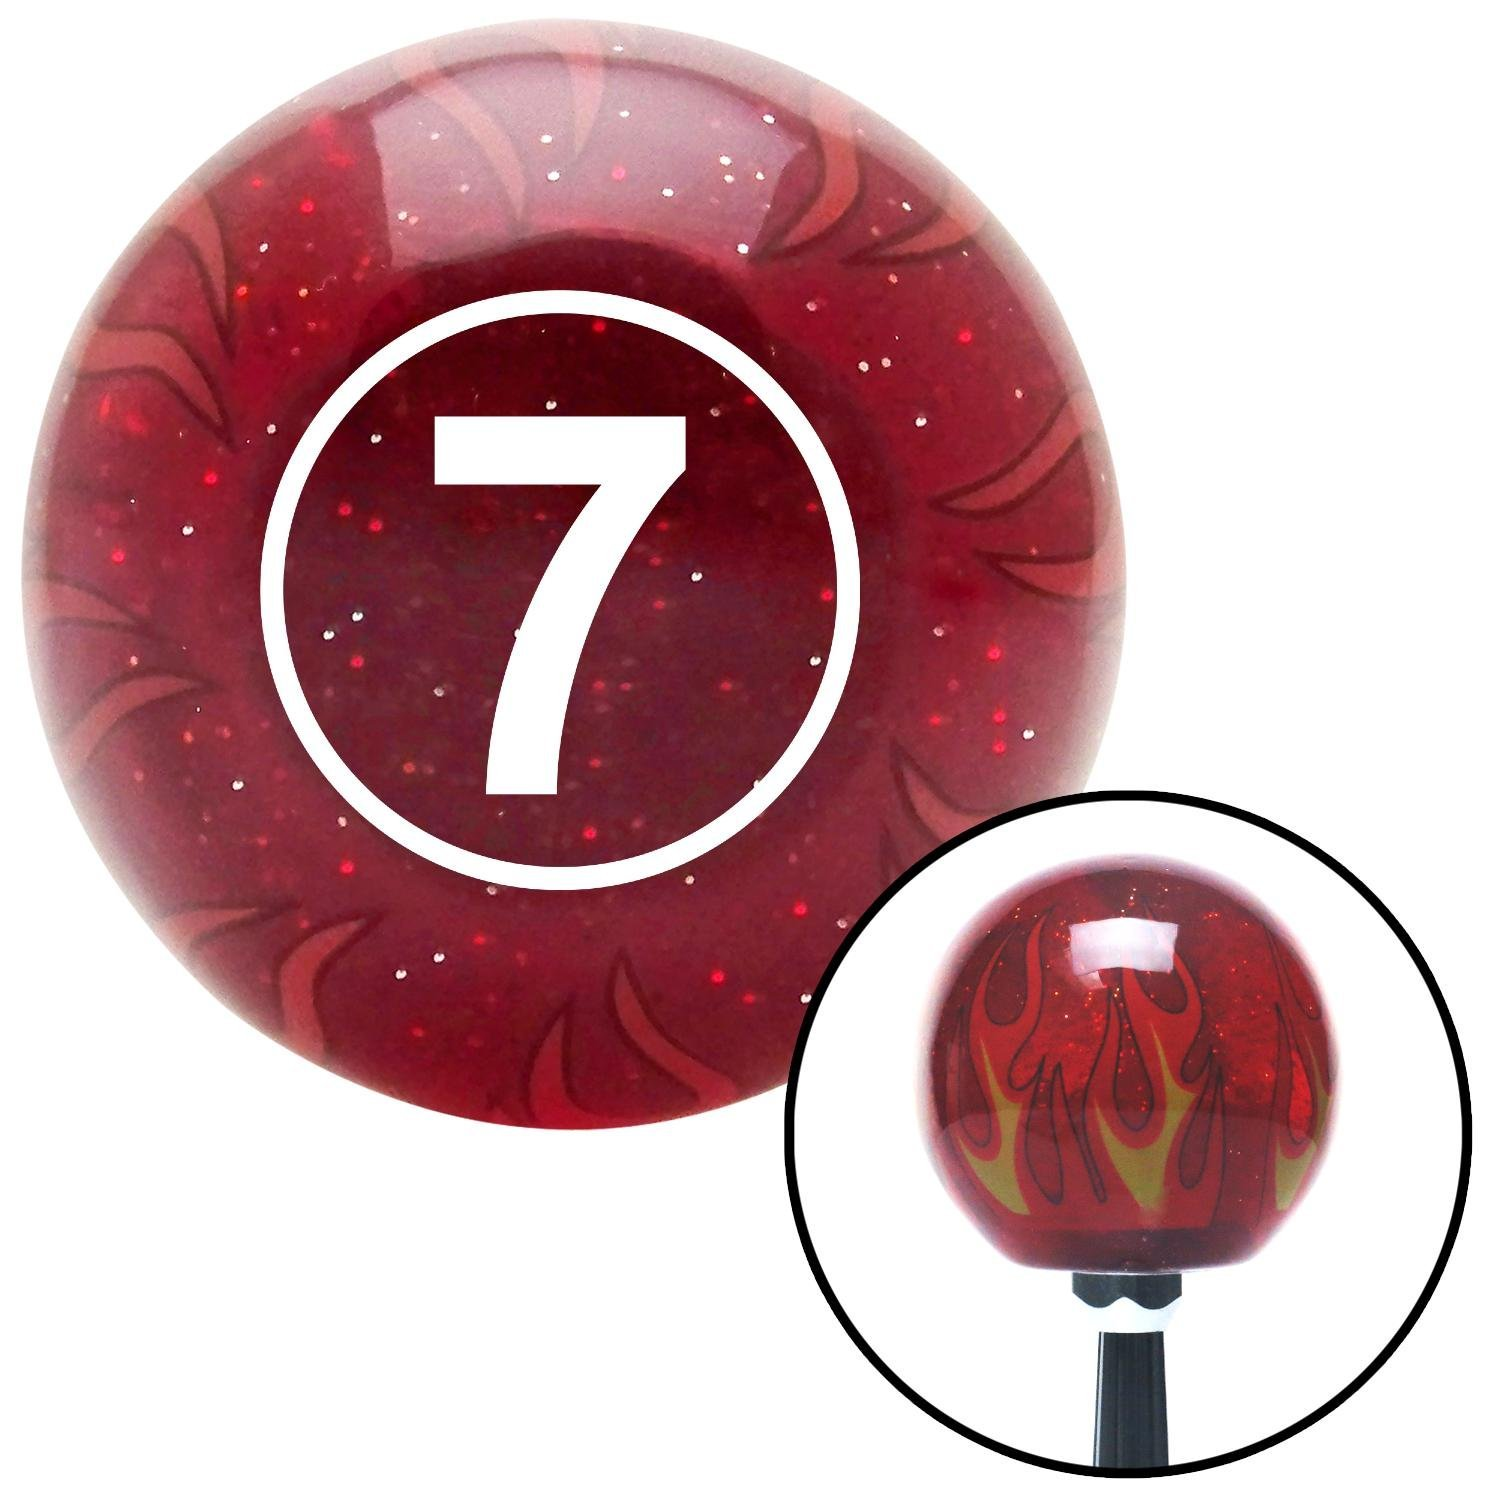 White Ball #7 American Shifter 236290 Red Flame Metal Flake Shift Knob with M16 x 1.5 Insert